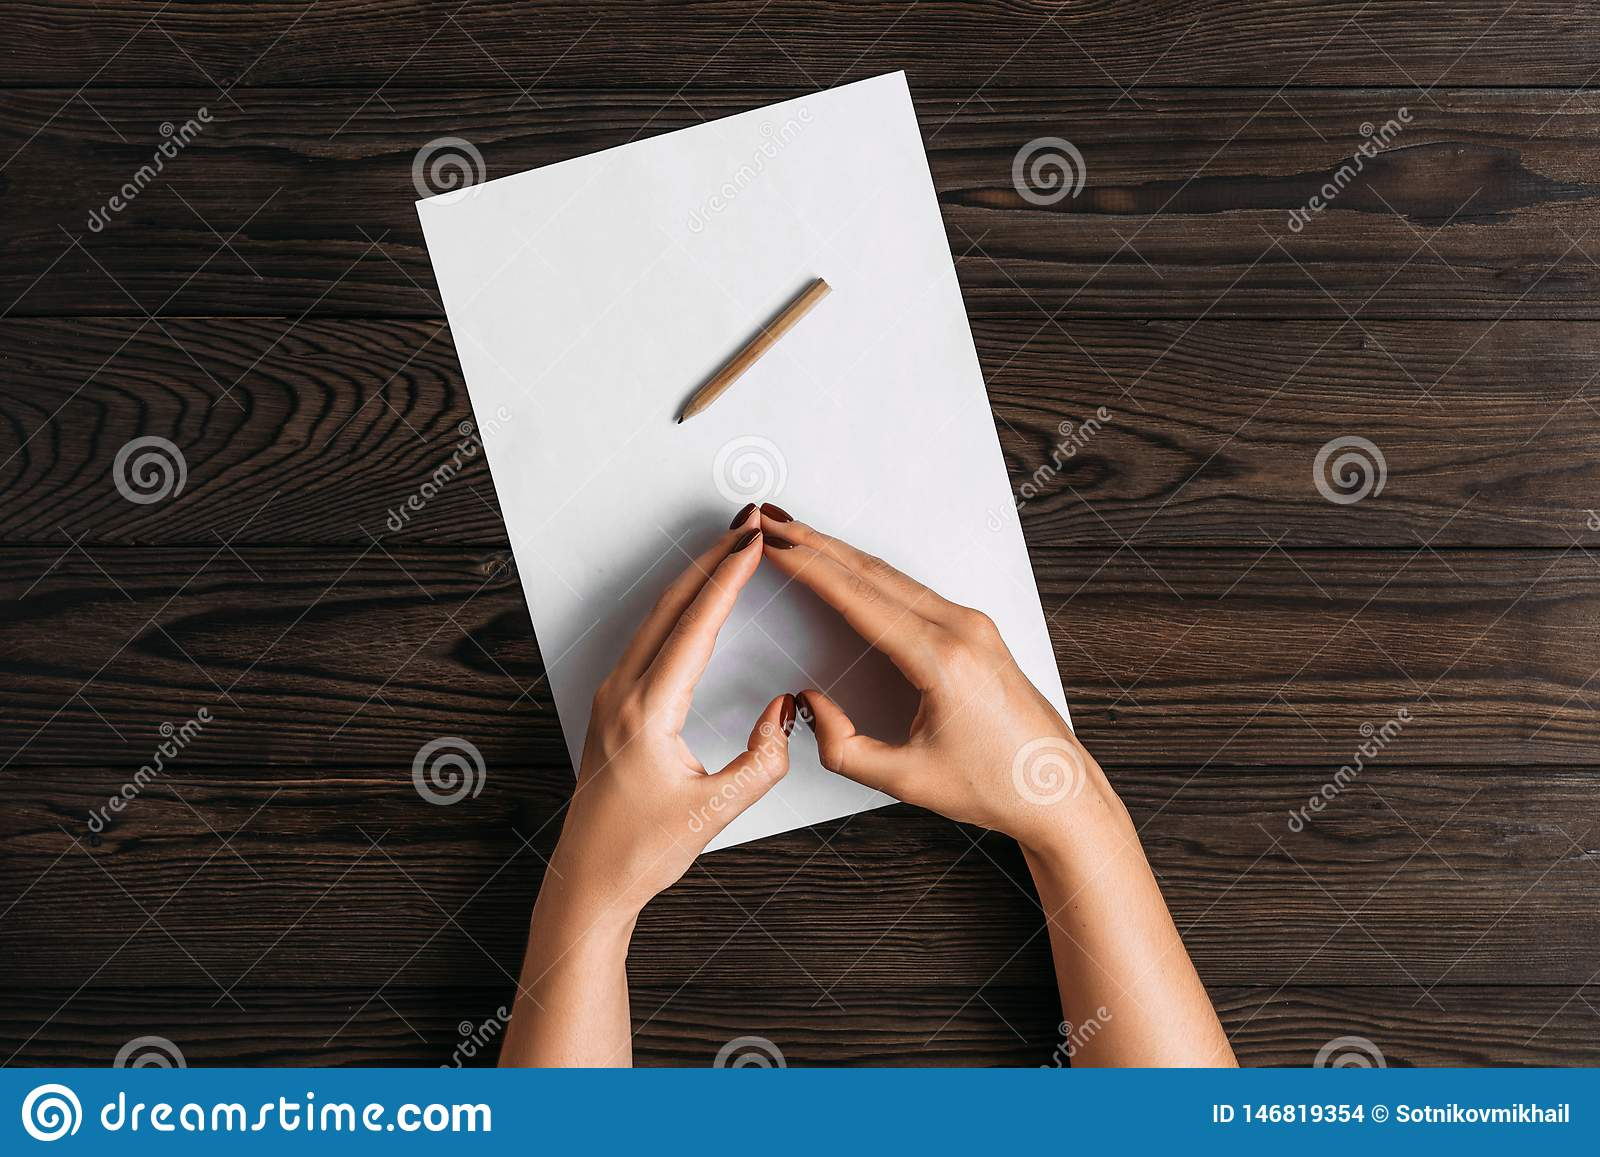 Top view of women`s hands, ready to write something on an empty piece of paper lying on a wooden table. White blank sheet of pape